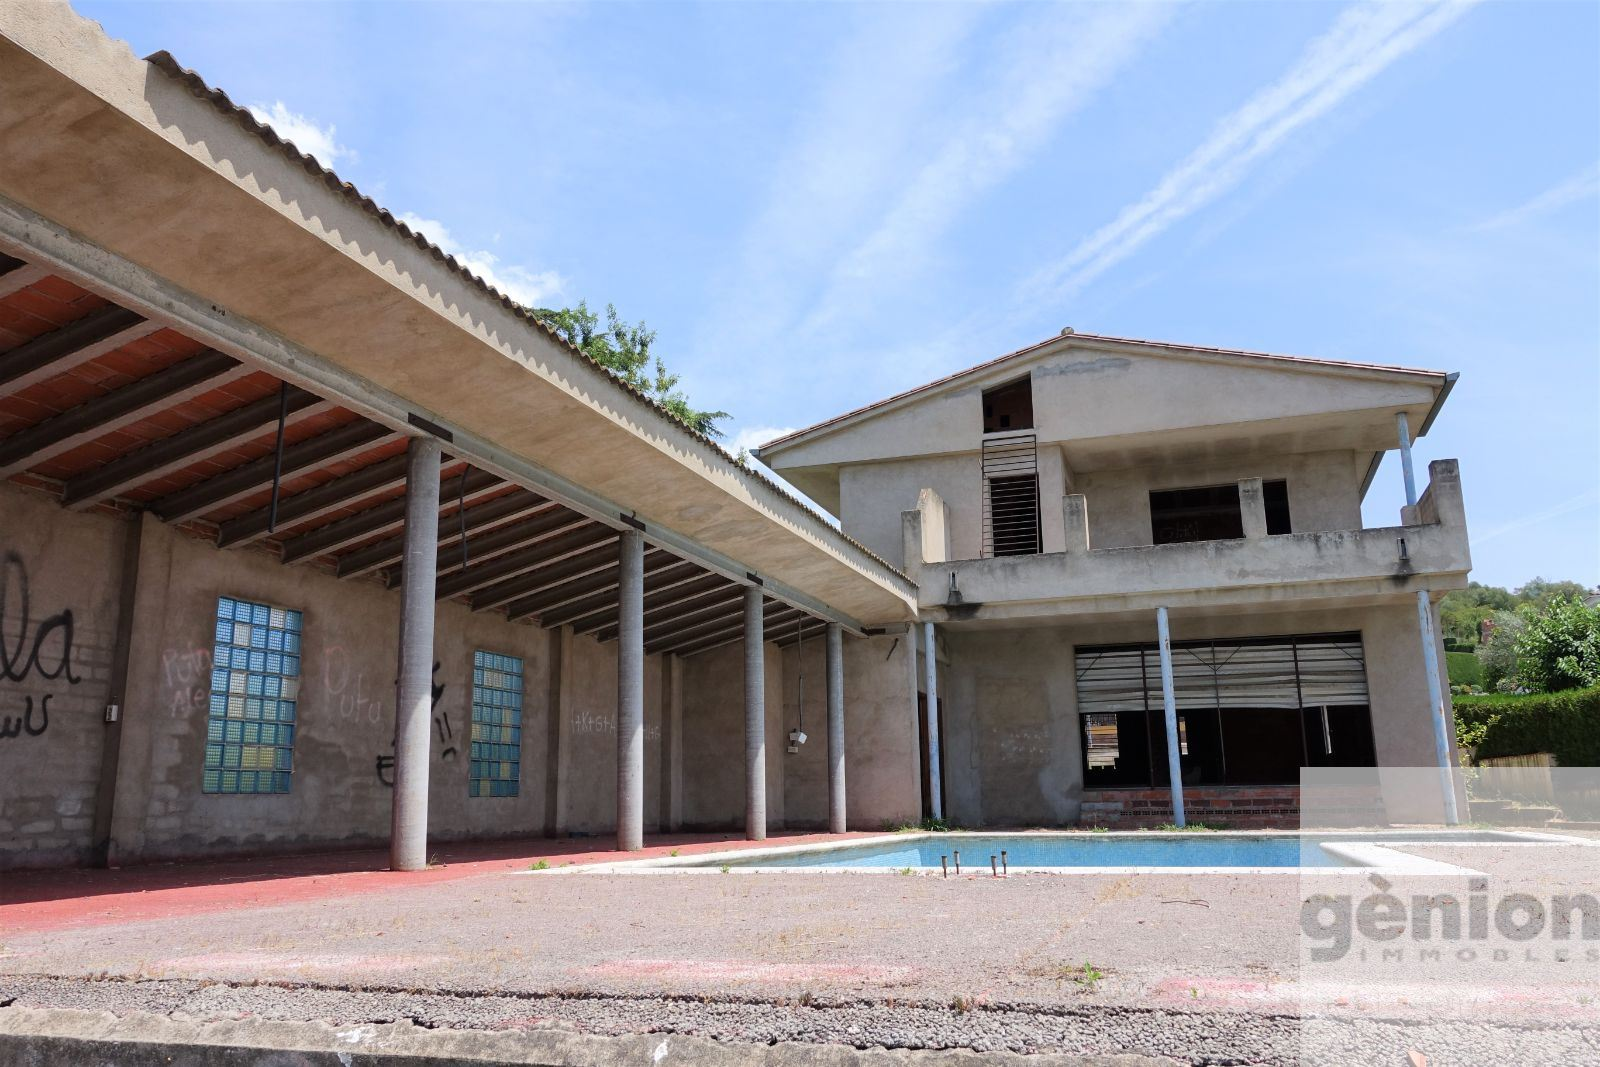 SEMI-FINISHED HOUSE IN PUIGVISTÓS, GIRONA. 597 M² GROSS FLOOR AREA ON A 824 M² PLOT